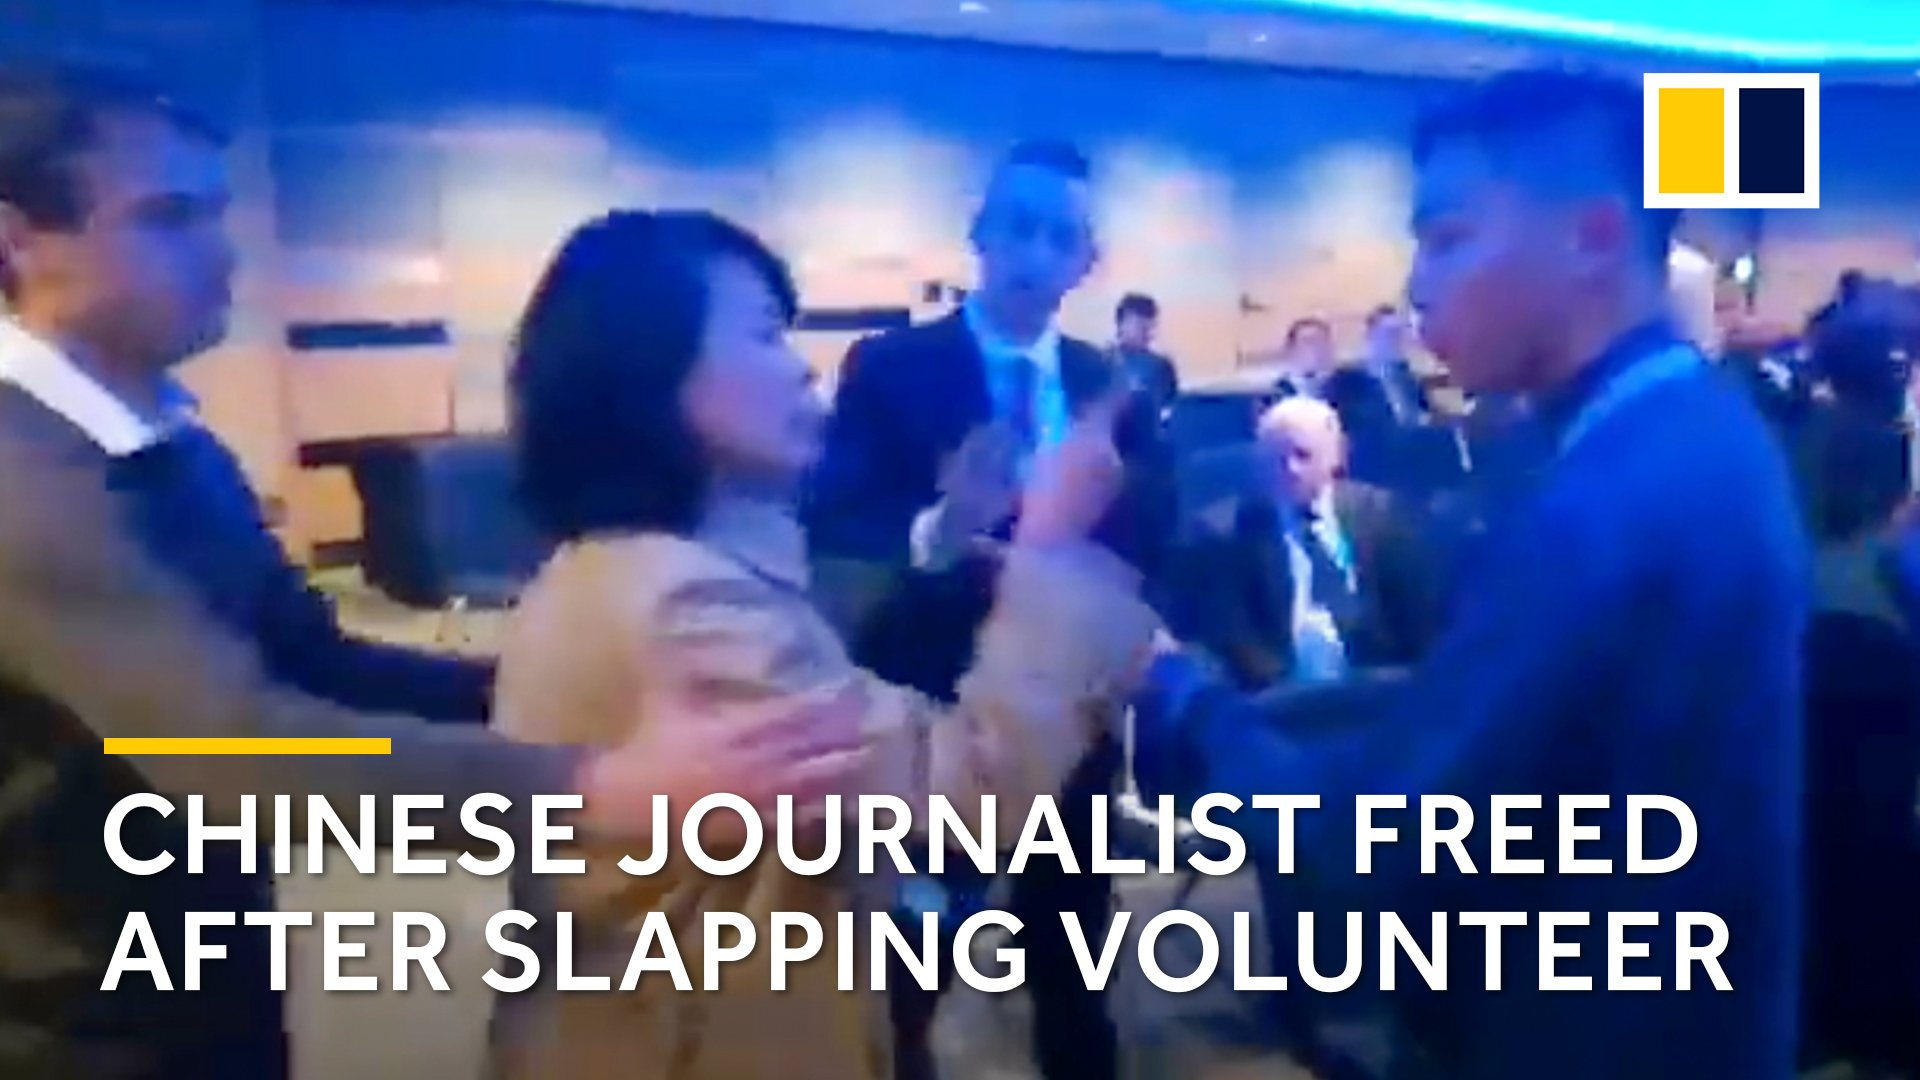 Chinese journalist arrested after slapping volunteer at